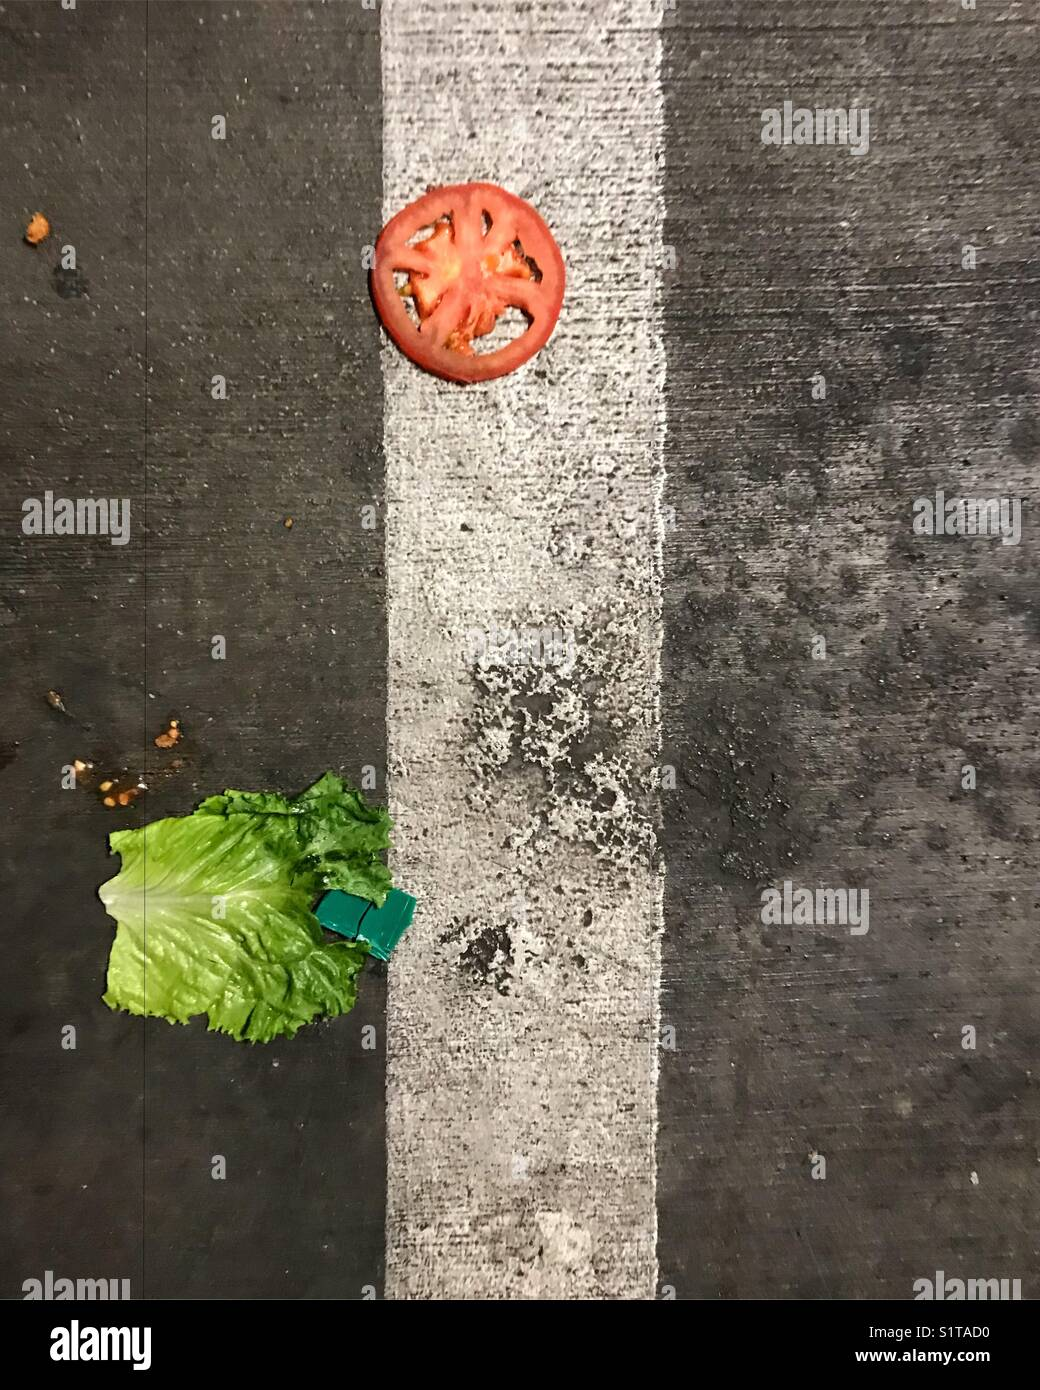 Vegetables on the ground - Stock Image